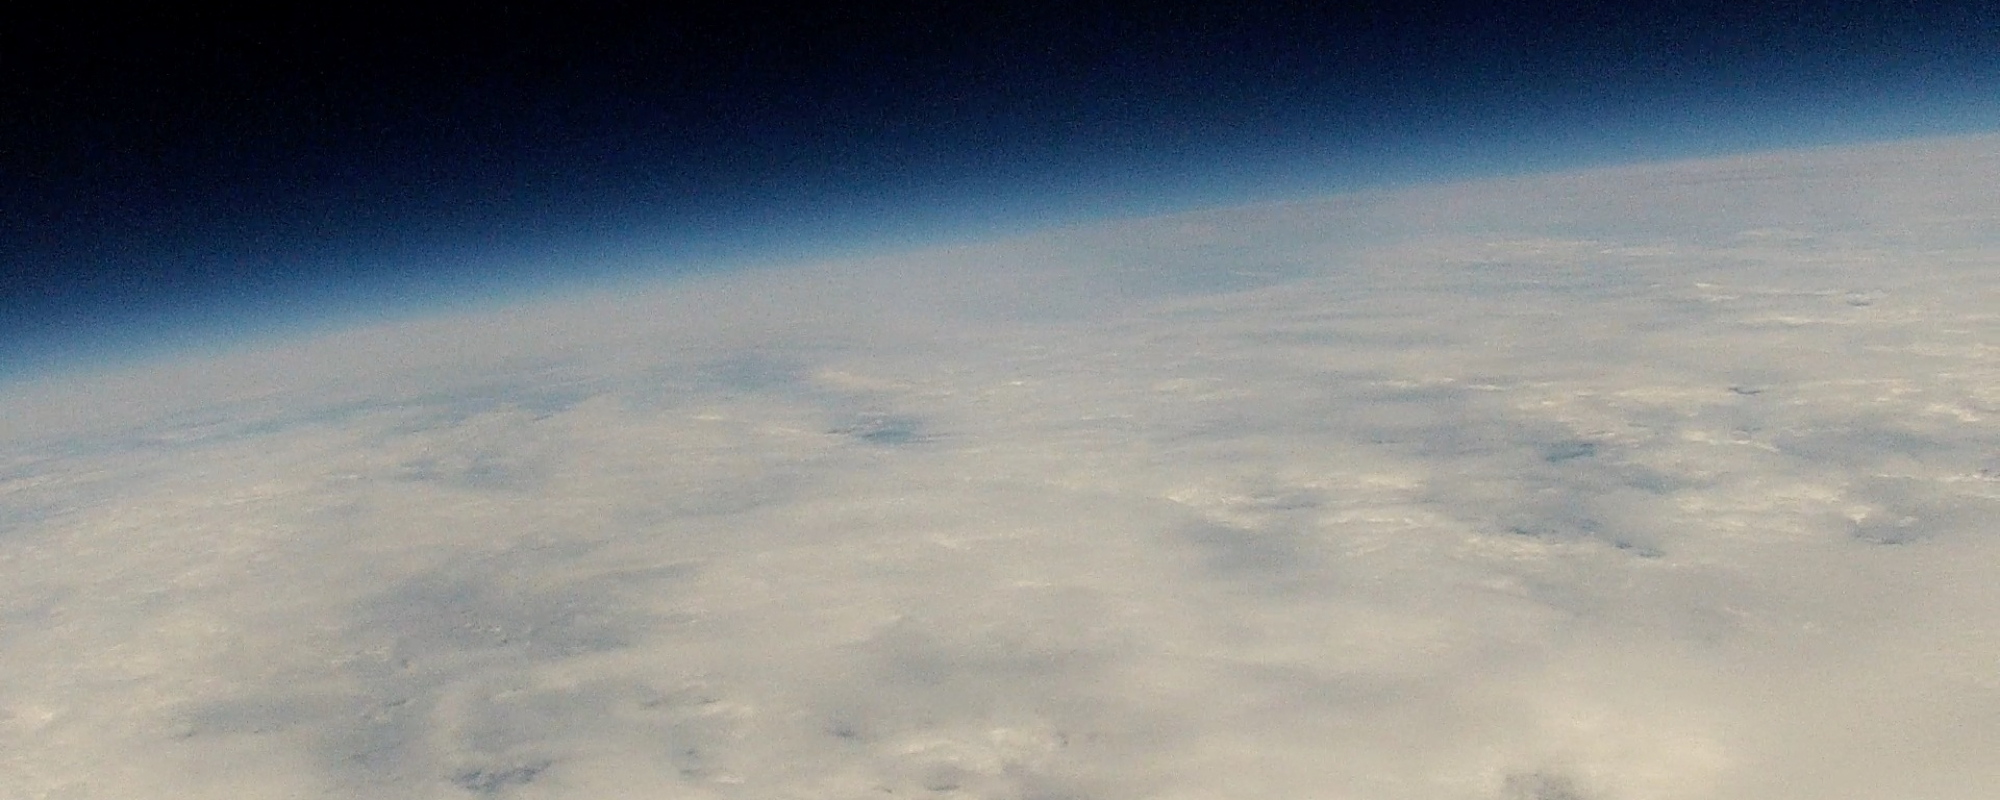 F93 space balloon